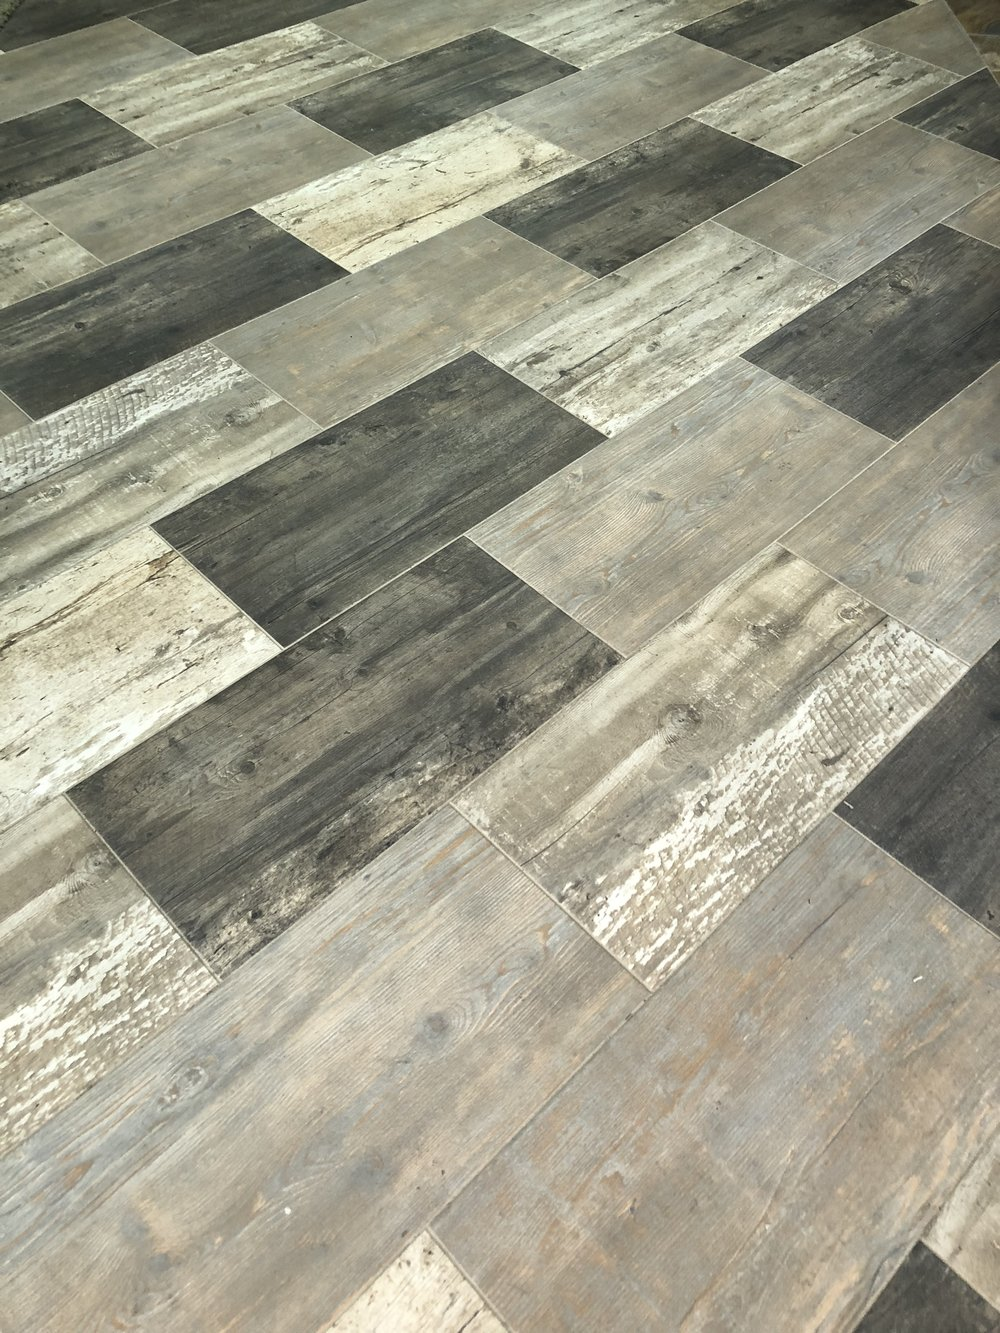 EXPERT INSTALLATION - By working with our Installation team, you're getting the best floor covering installers to ensure you get the perfect new floor you're looking for. Our flooring installation professionals measure, install and clean up, delivering 100% satisfaction guaranteed.